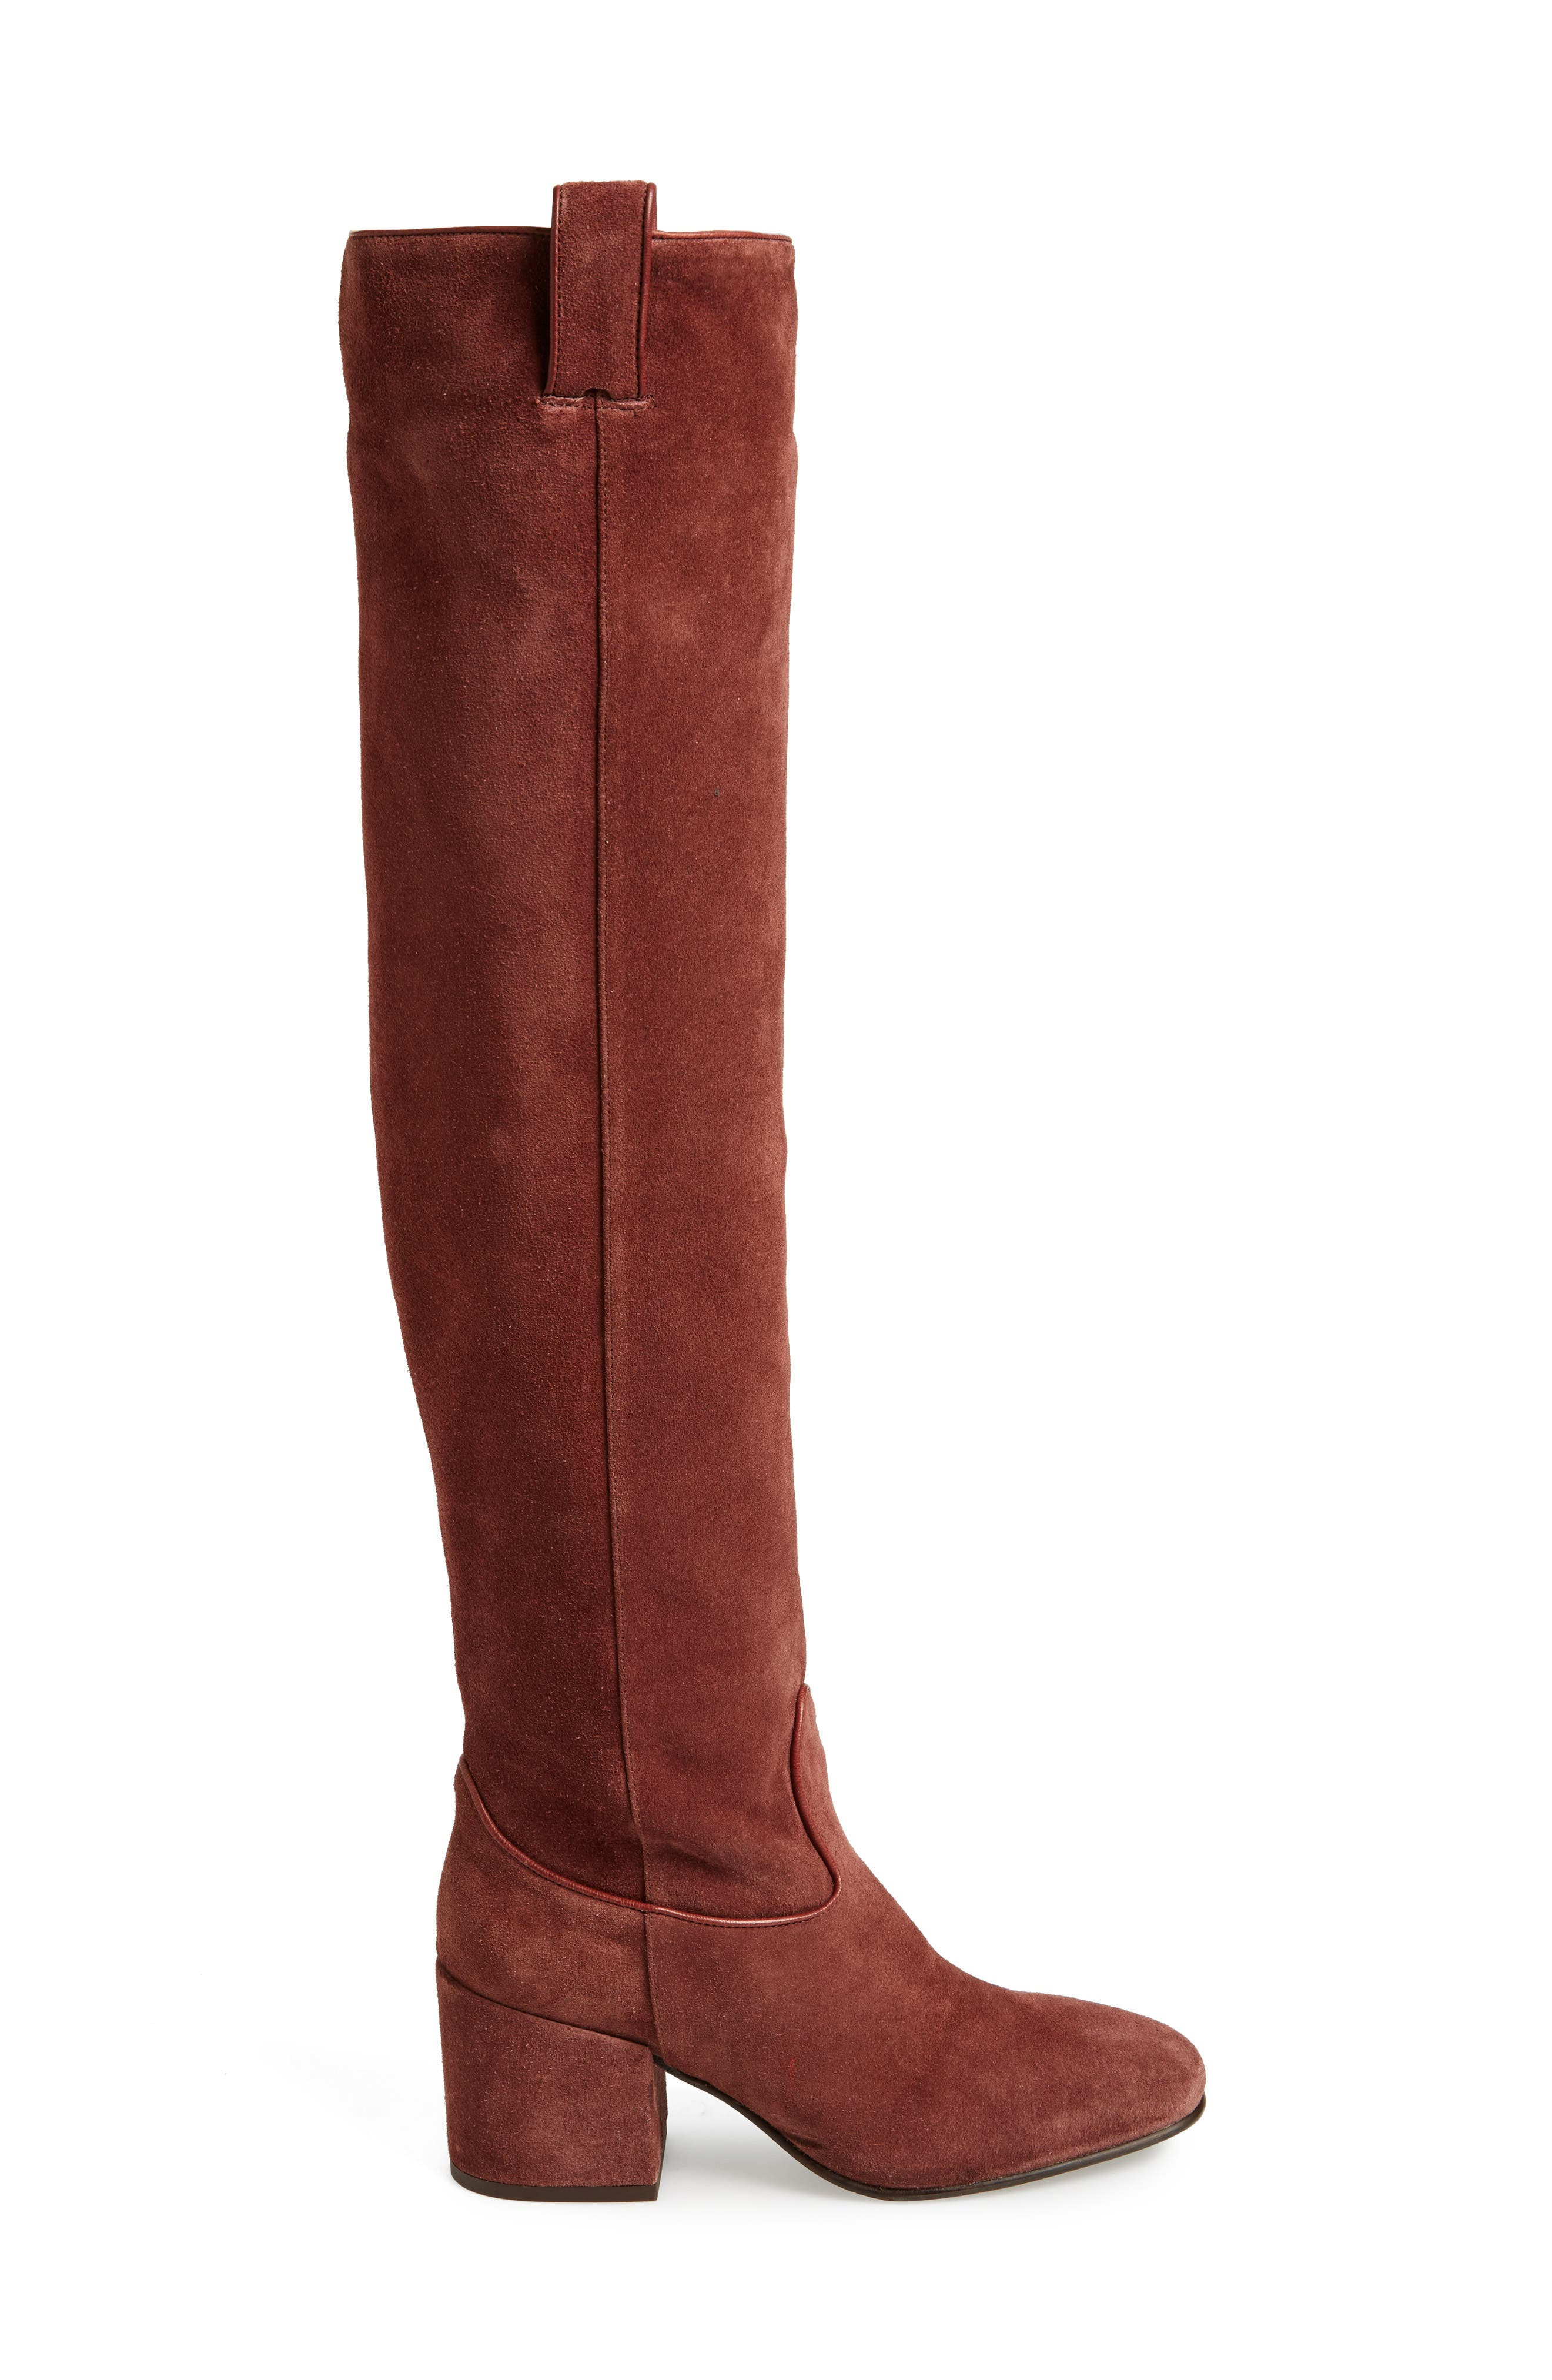 Delia Over the Knee Boot,                             Alternate thumbnail 3, color,                             930